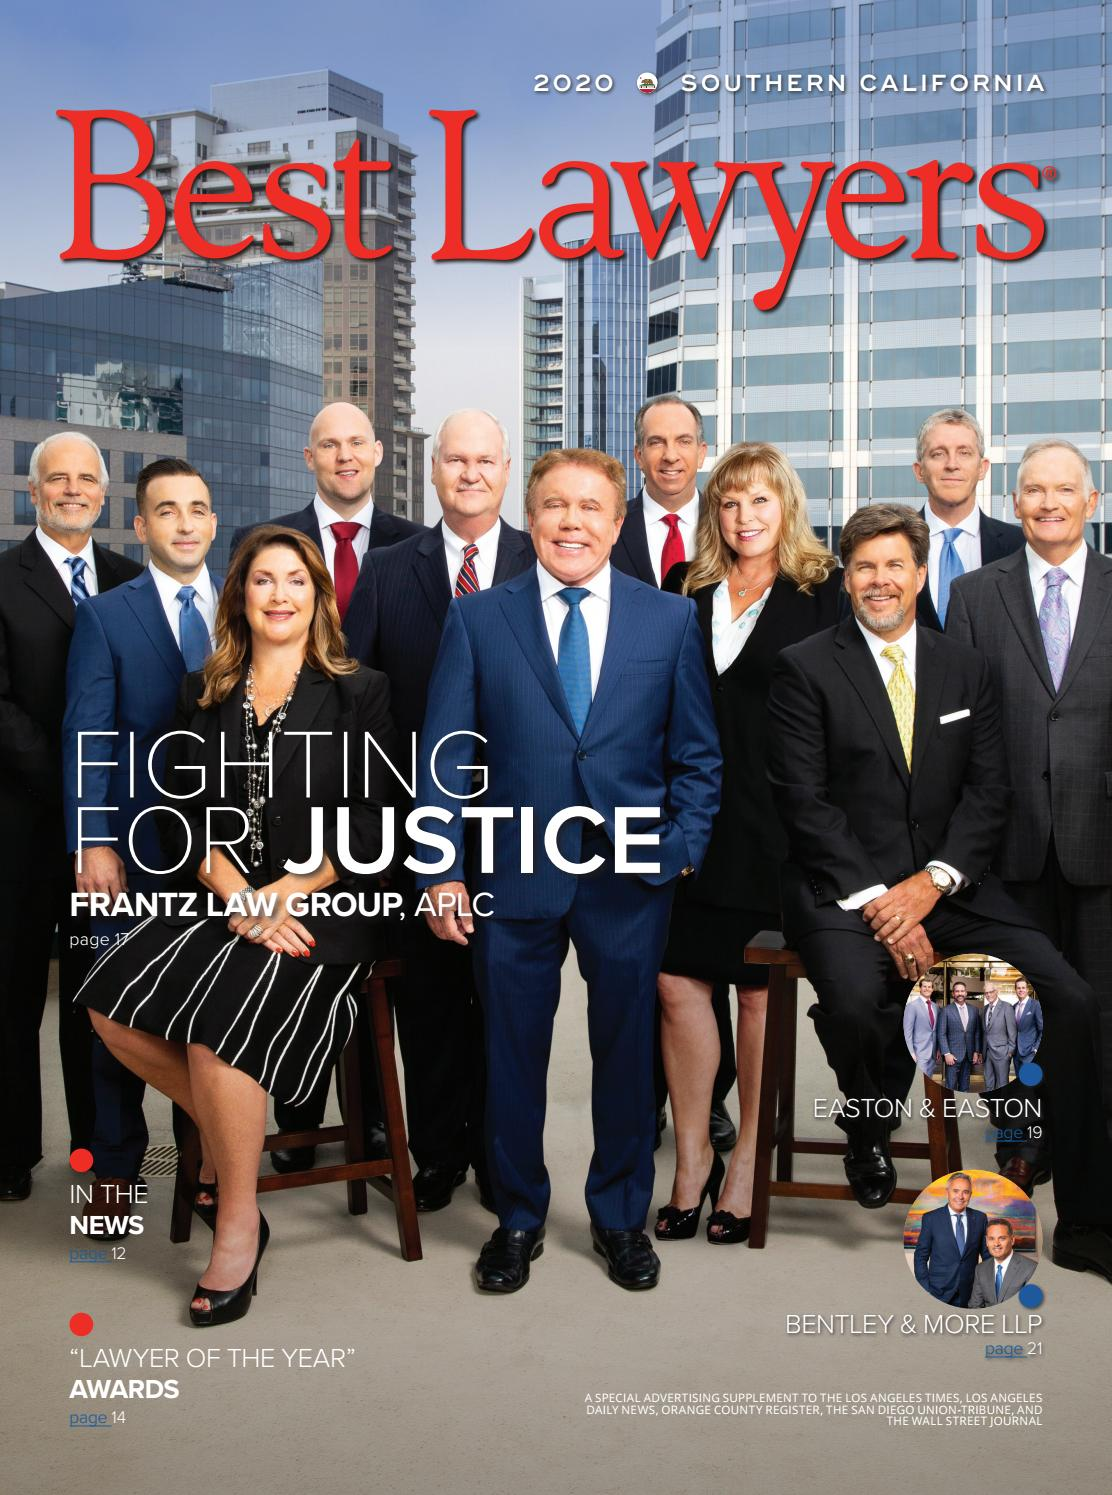 Best Lawyers in Southern California 2019 by Best Lawyers issuu